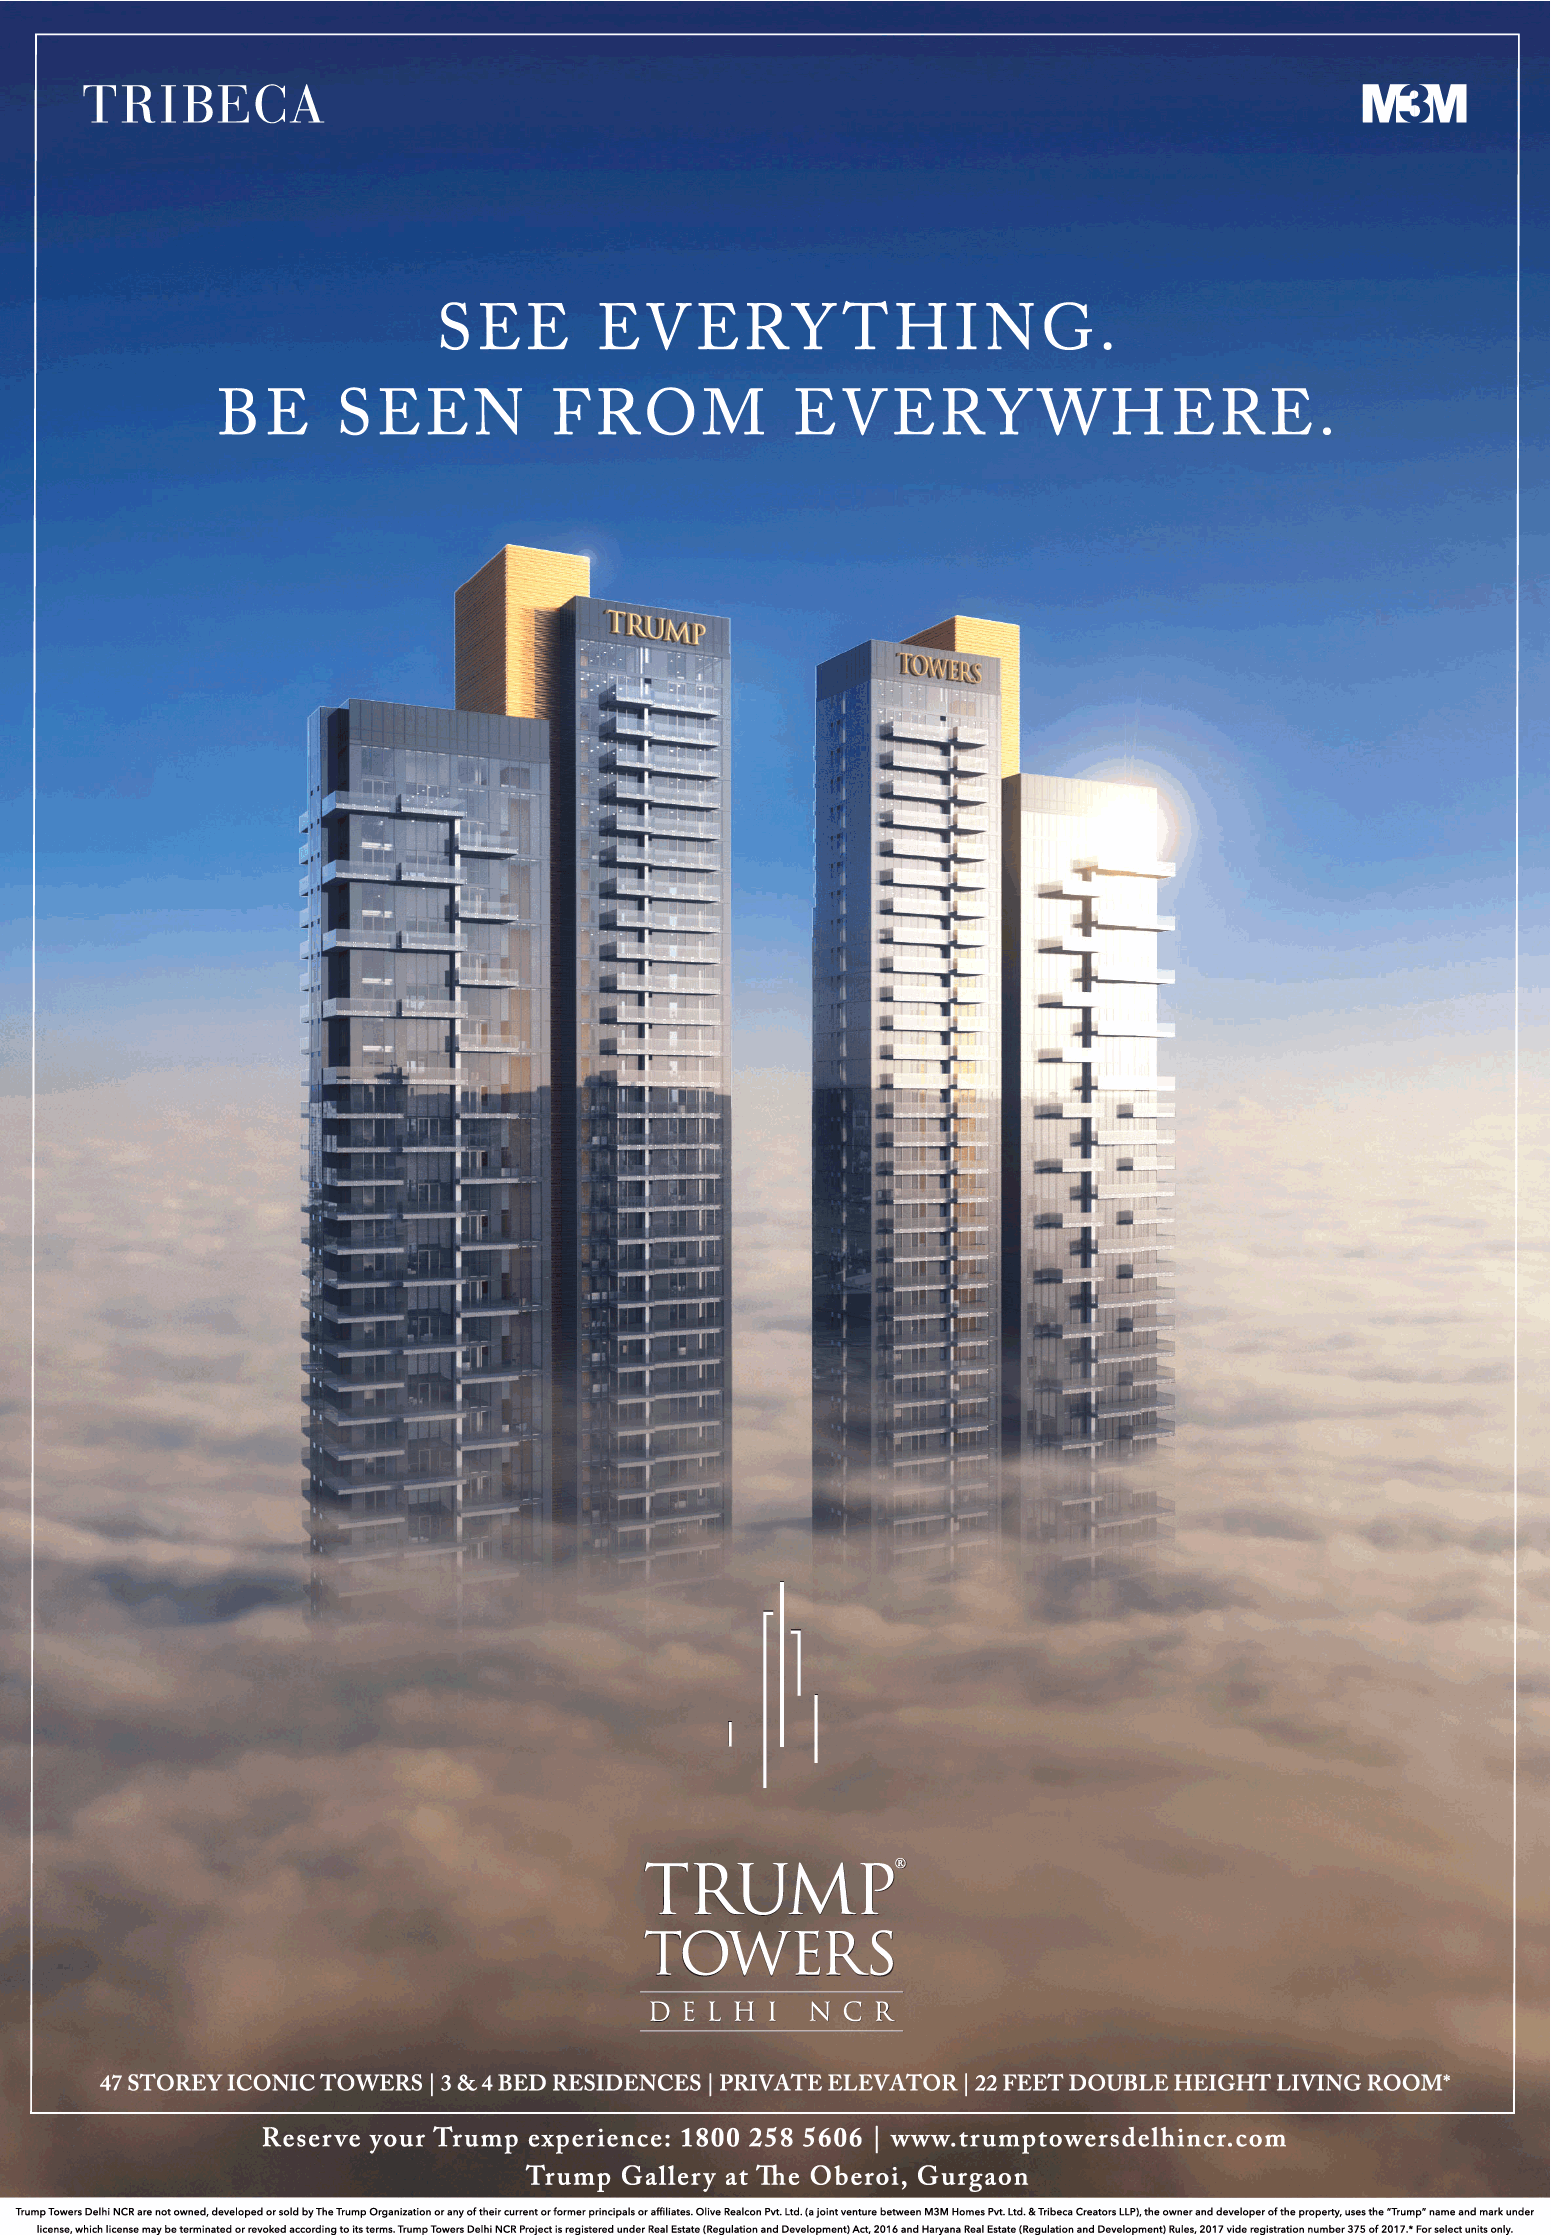 m3m tribega trump towers see everything be seen from